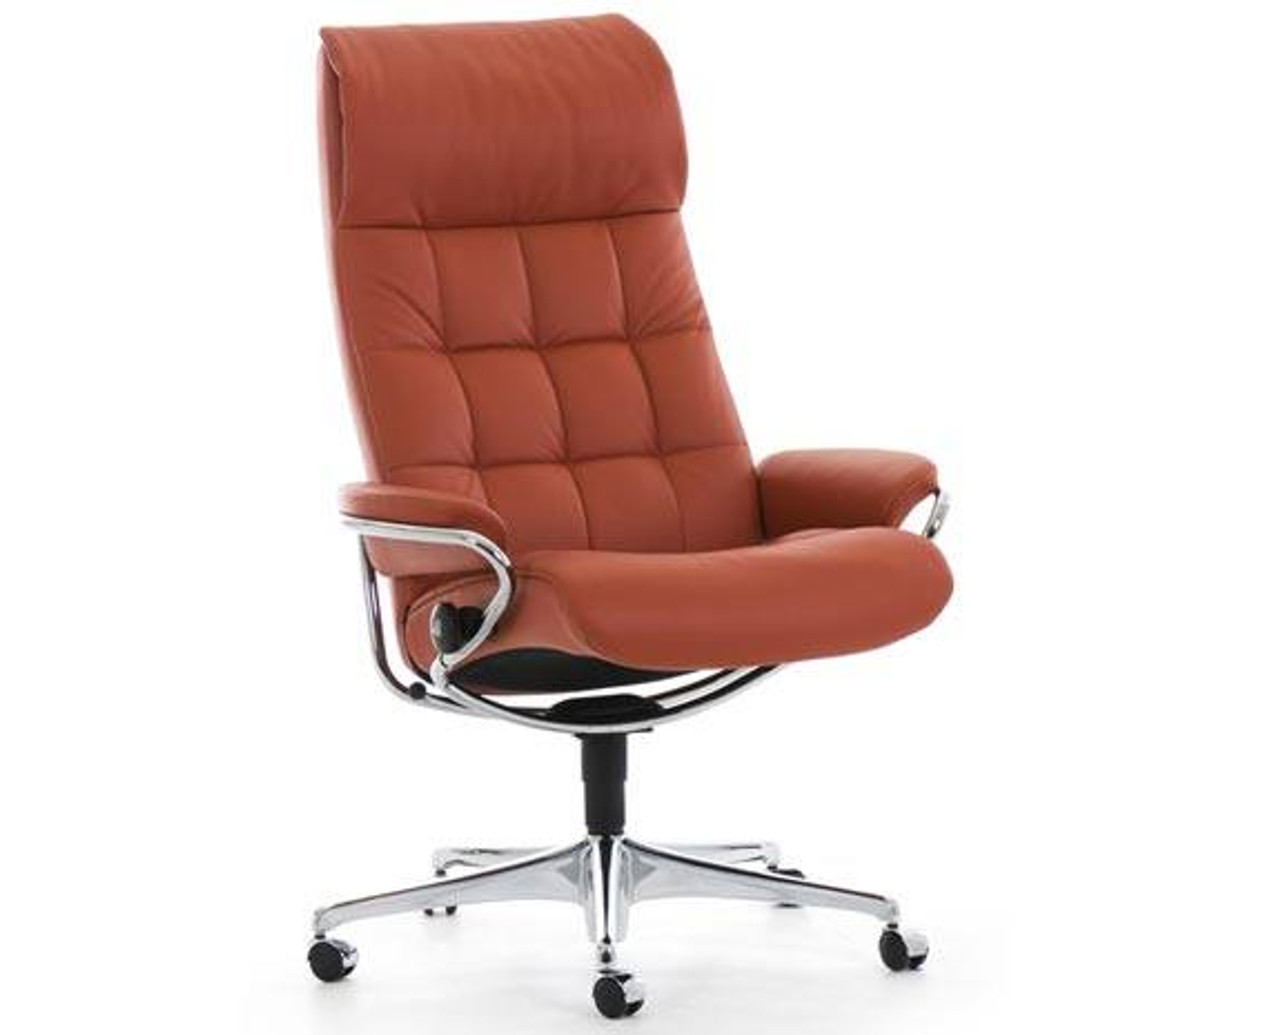 Stressless Nordic Legcomfort High Back Stressless London Office Chair Nationwide Delivery